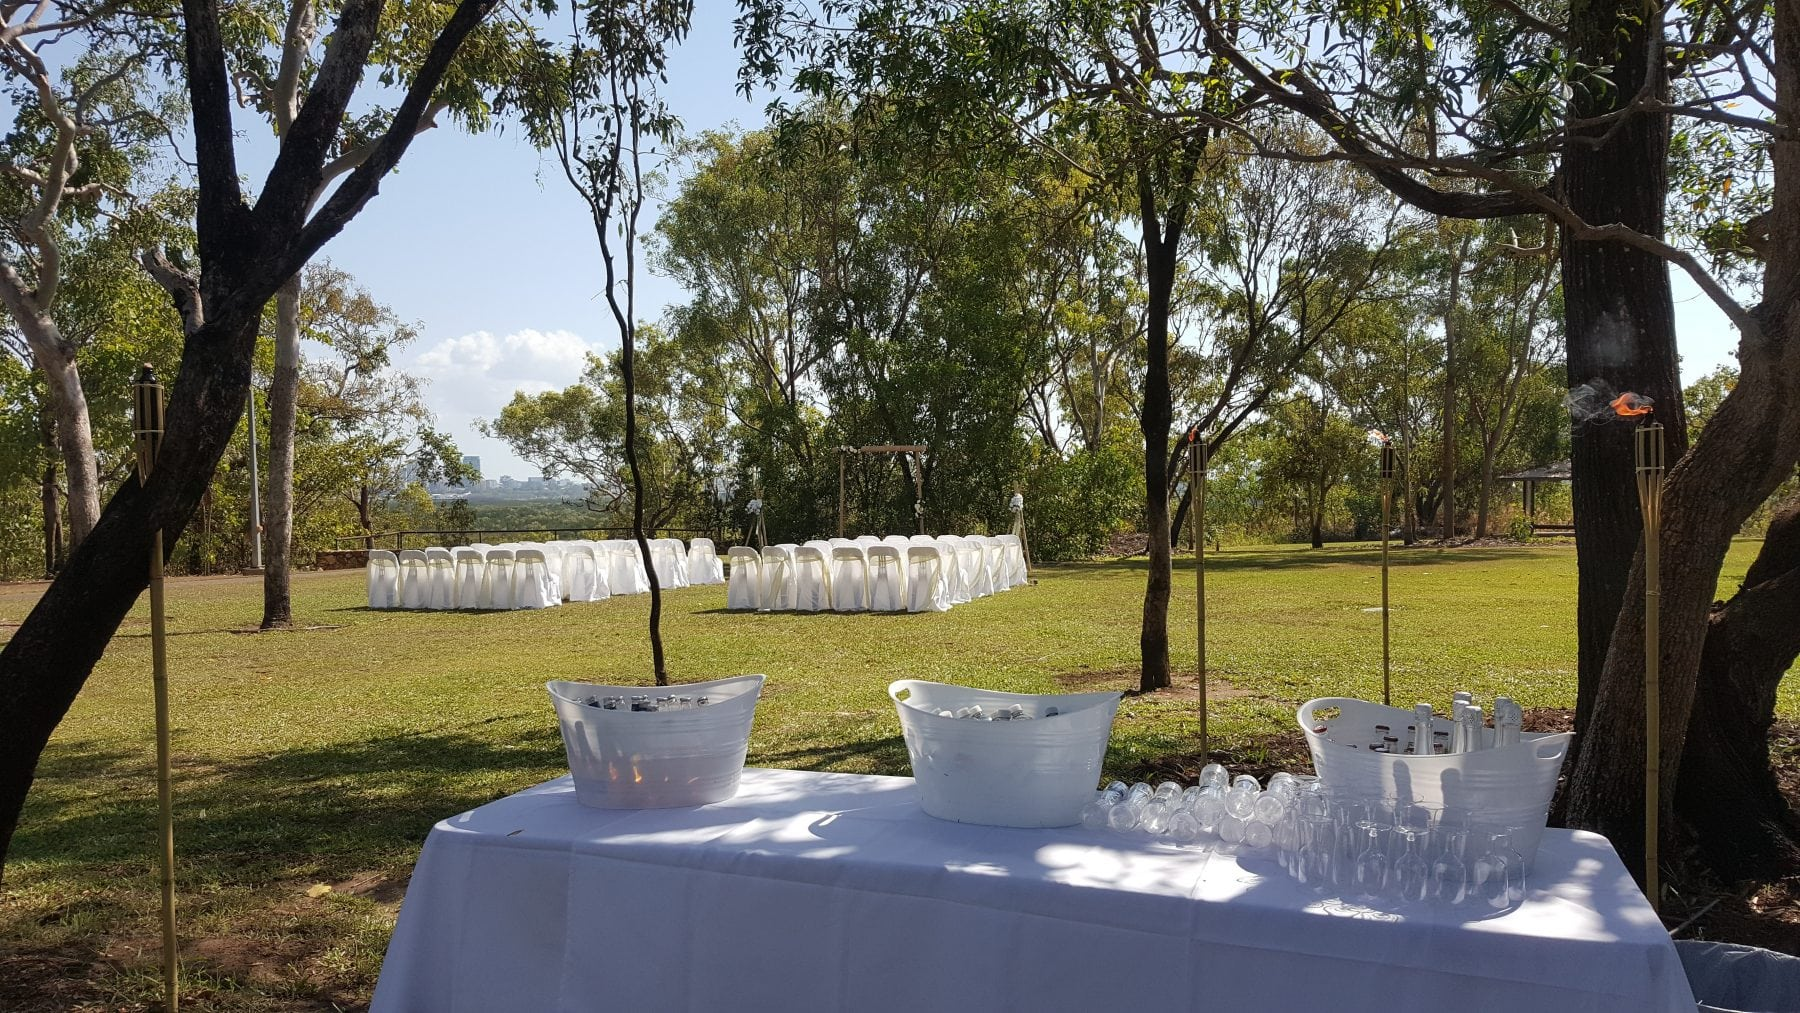 Top End Party Hire and wedding ceremonies